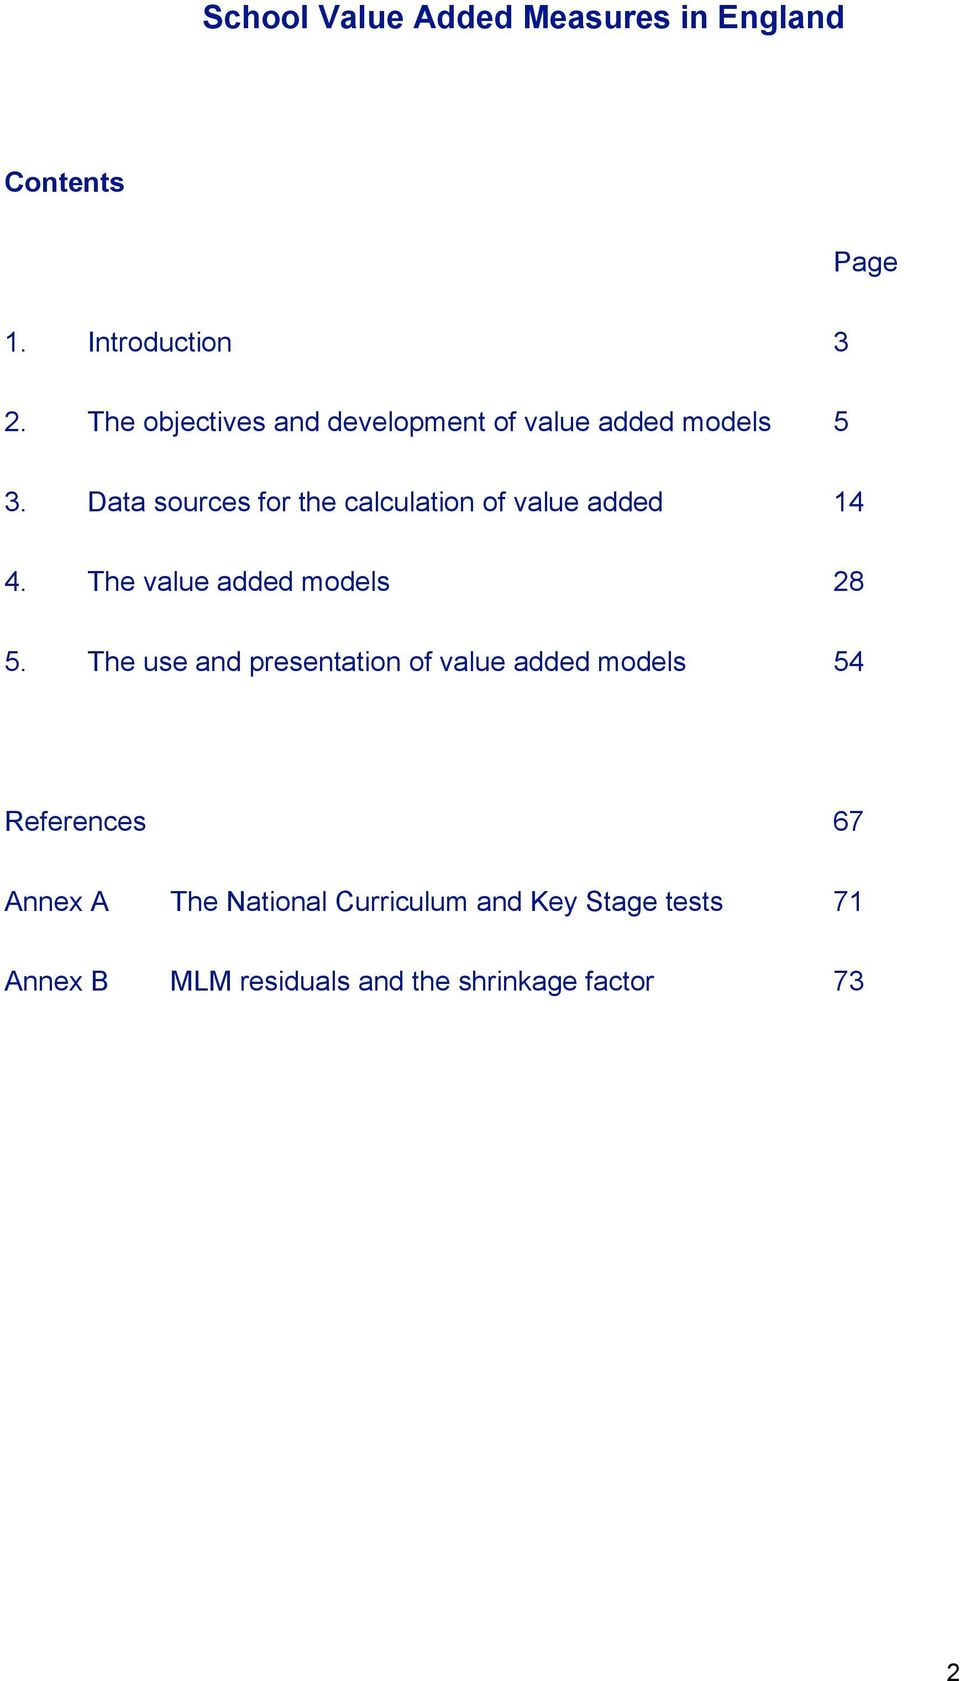 Data sources for the calculation of value added 14 4. The value added models 28 5.